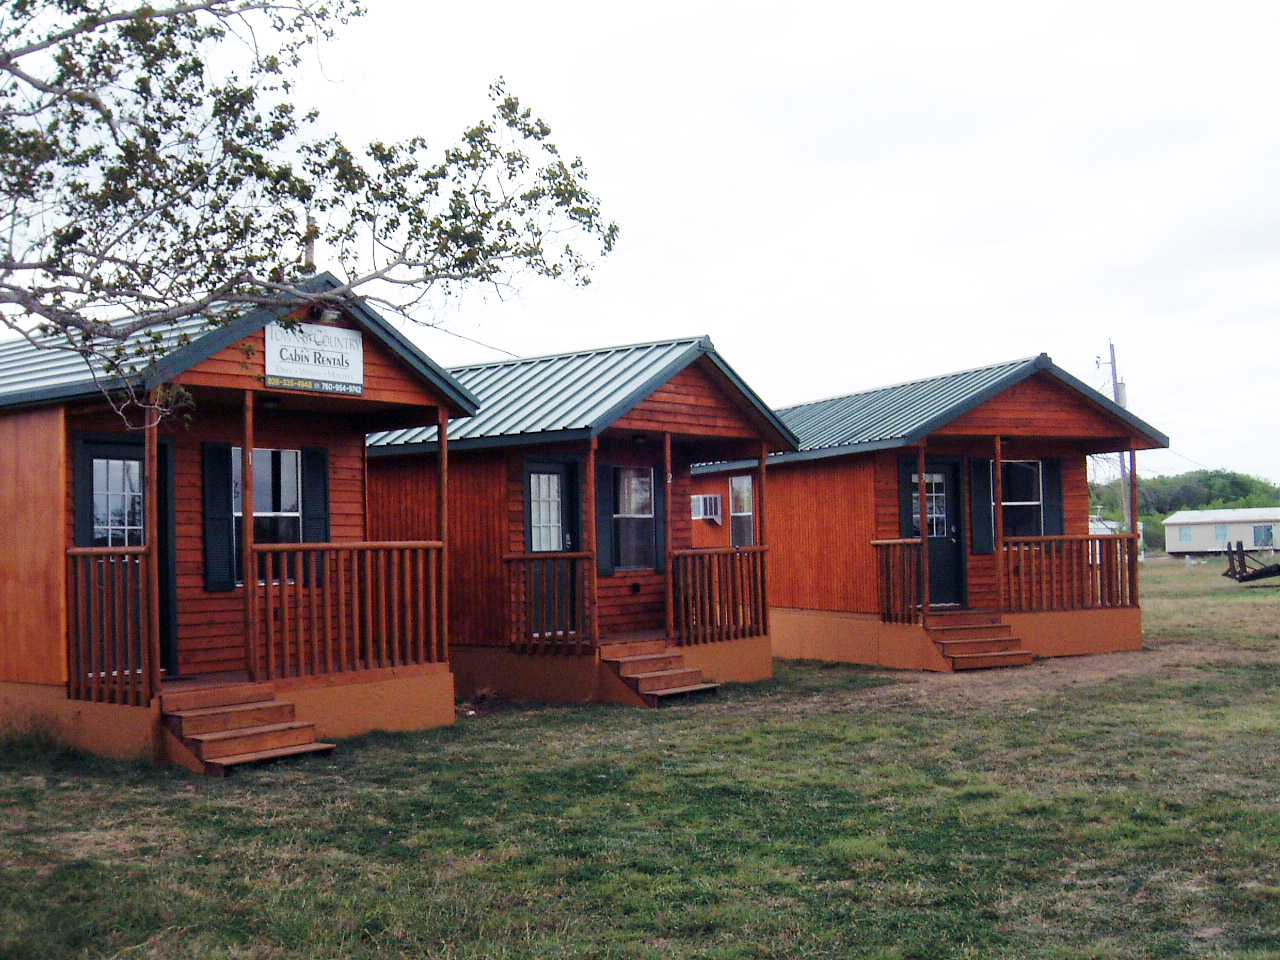 Town and Country Cabins Save 50%, Jourdanton TX